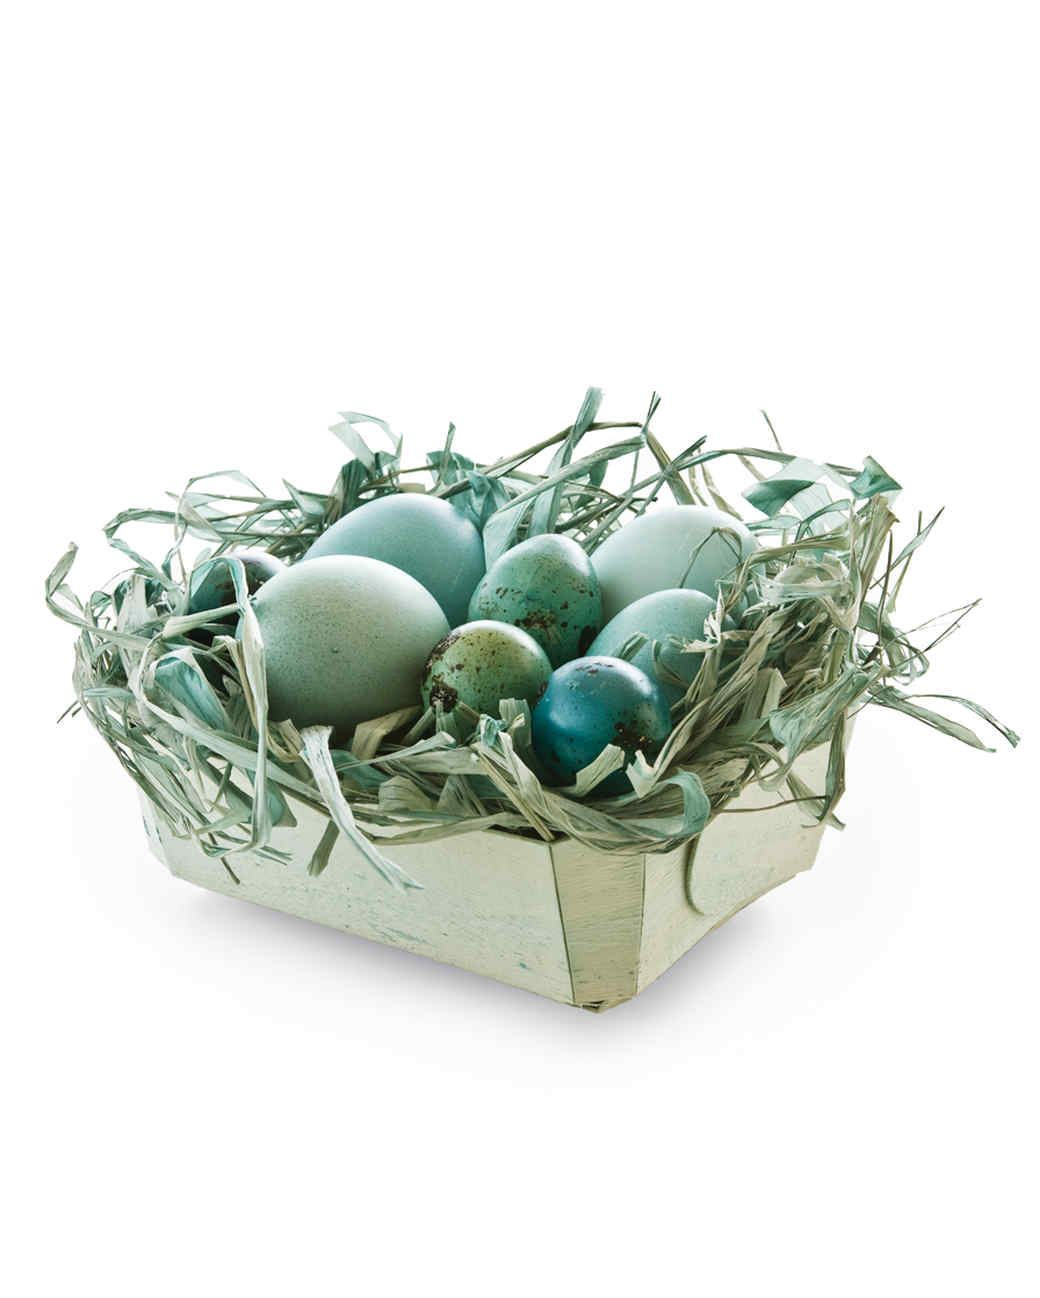 dyed easter baskets martha stewart living why should eggs have all the fun decorating - One Stop Decorating